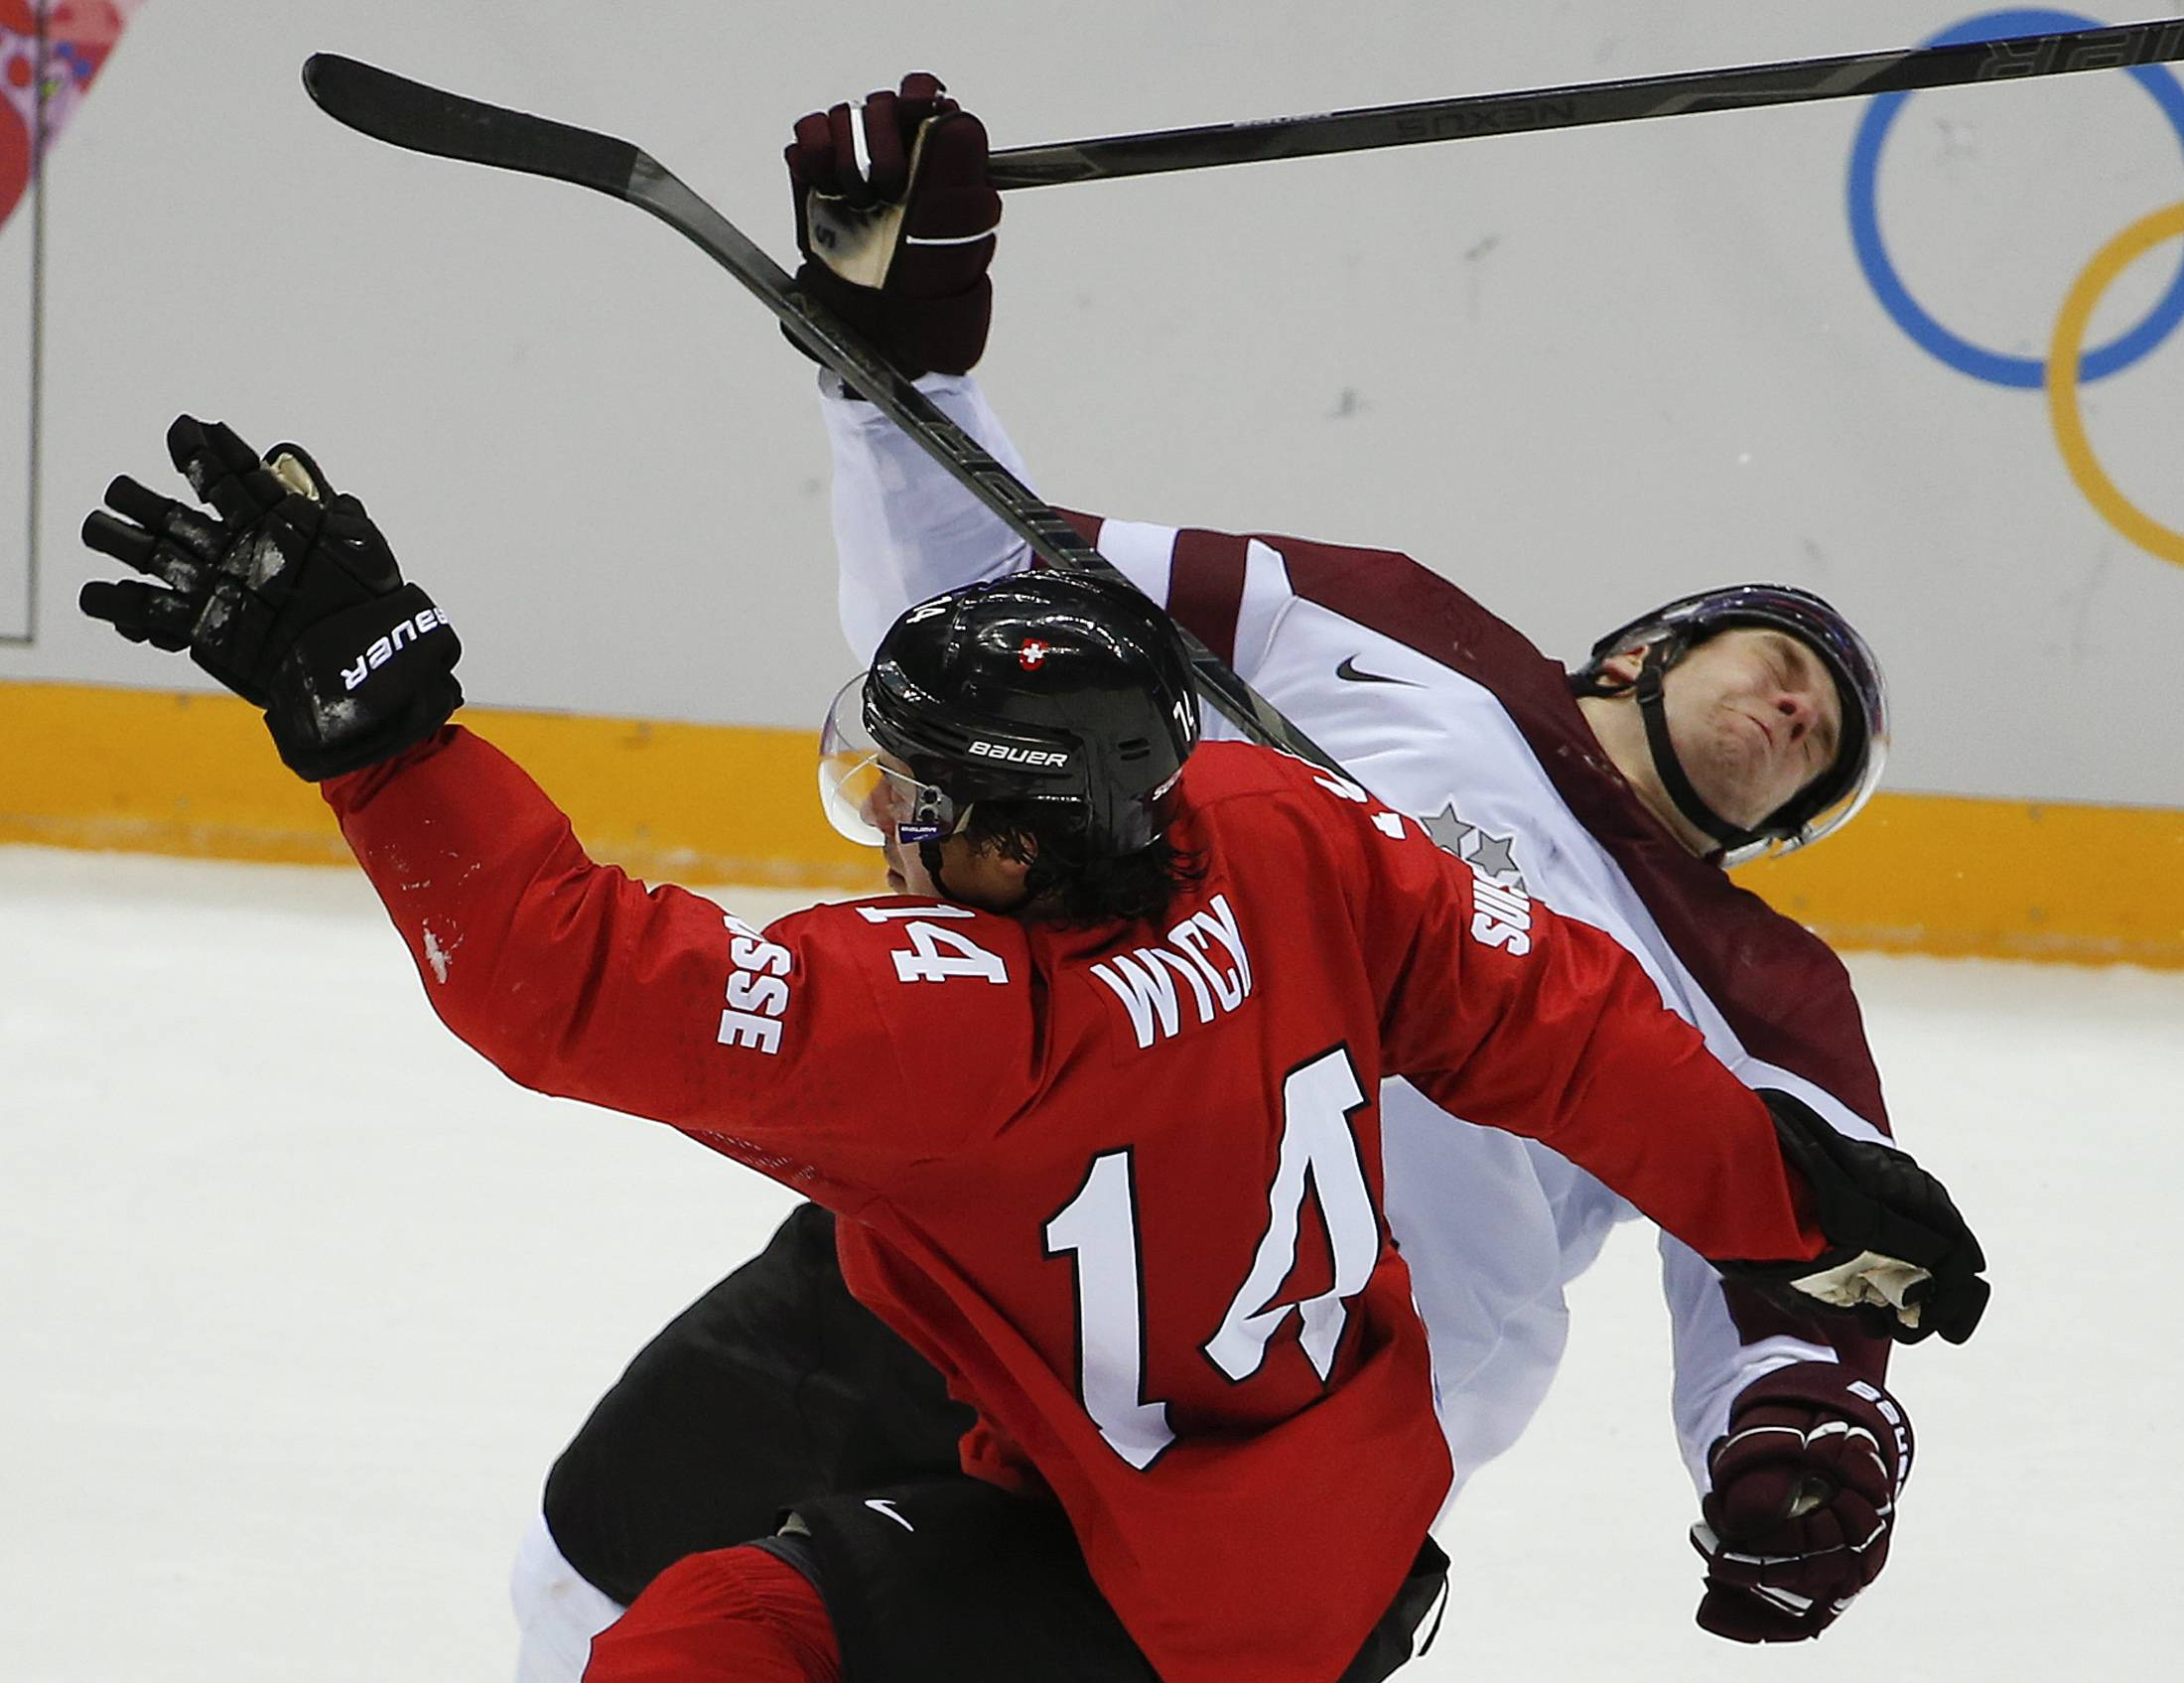 Switzerland forward Roman Wick (14) collides with Latvia forward Janis Sprukts in the second period of a men's ice hockey game at the 2014 Winter Olympics, Tuesday, Feb. 18, 2014, in Sochi, Russia.